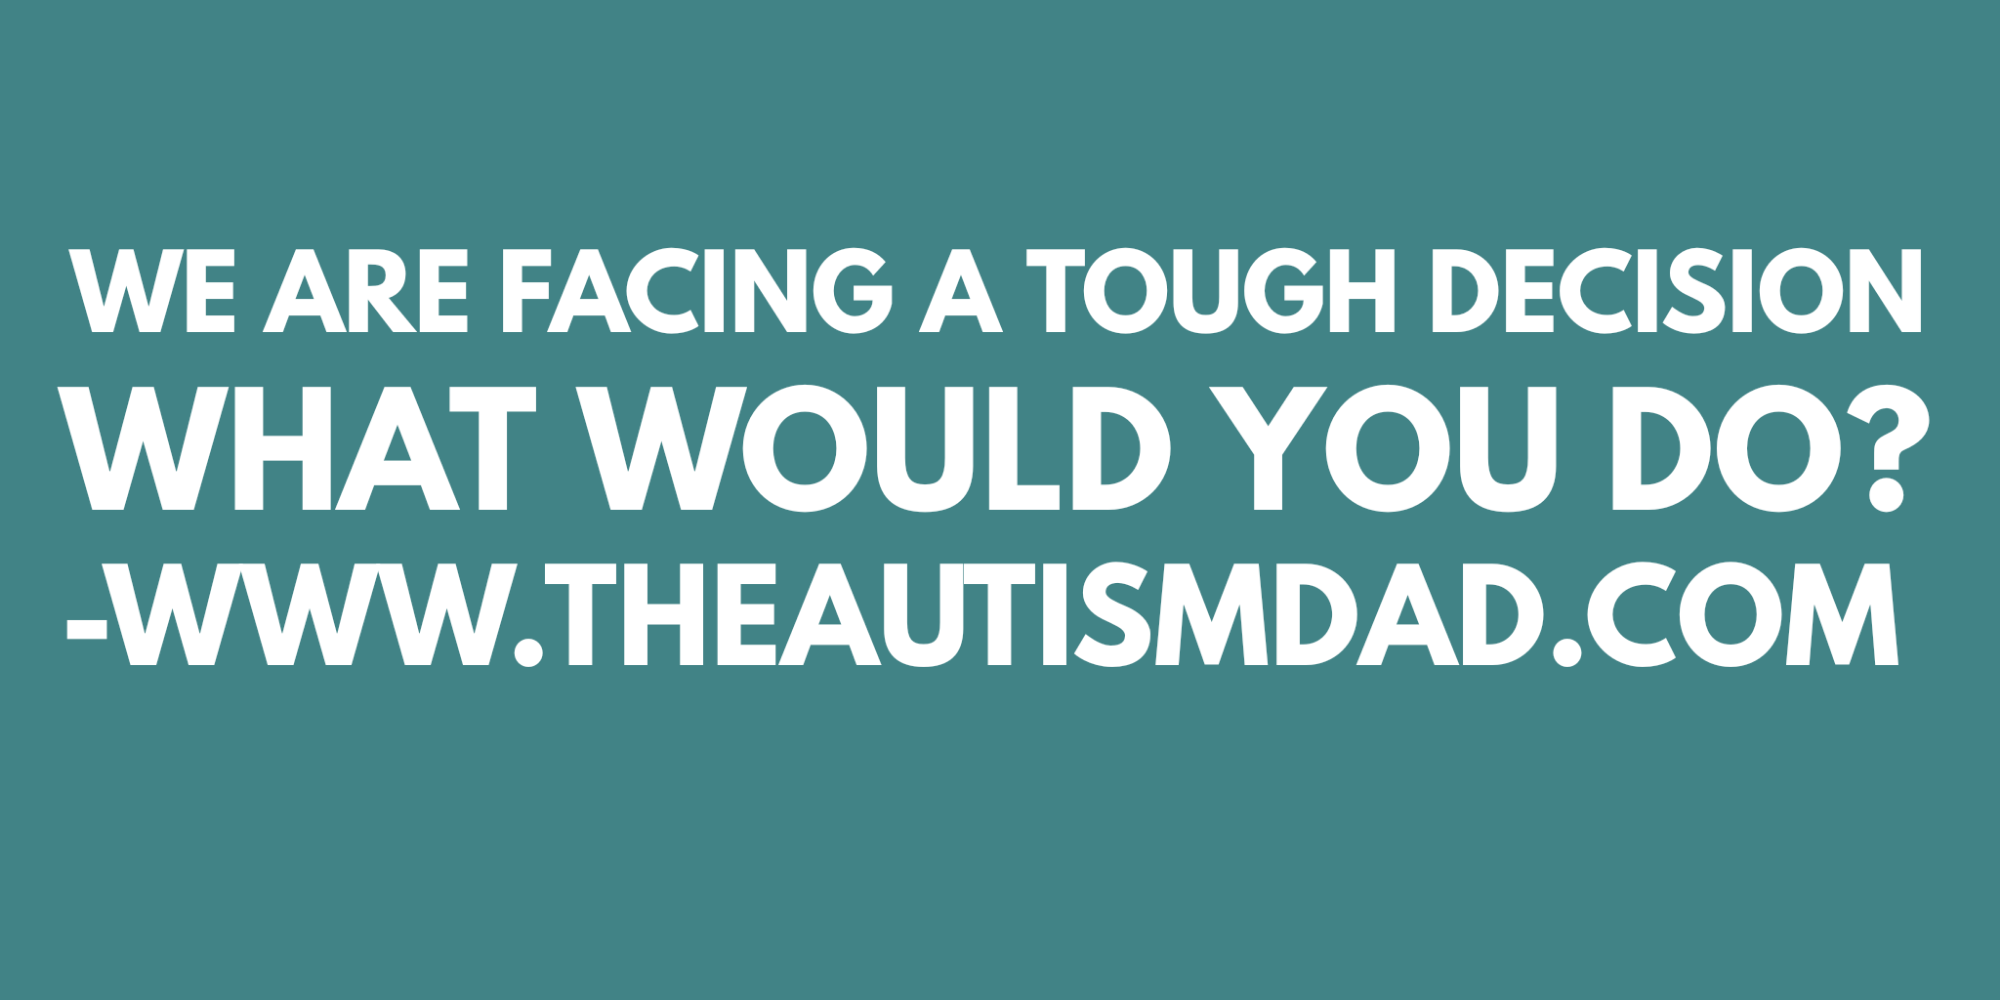 We are facing a tough decision – What would you do?